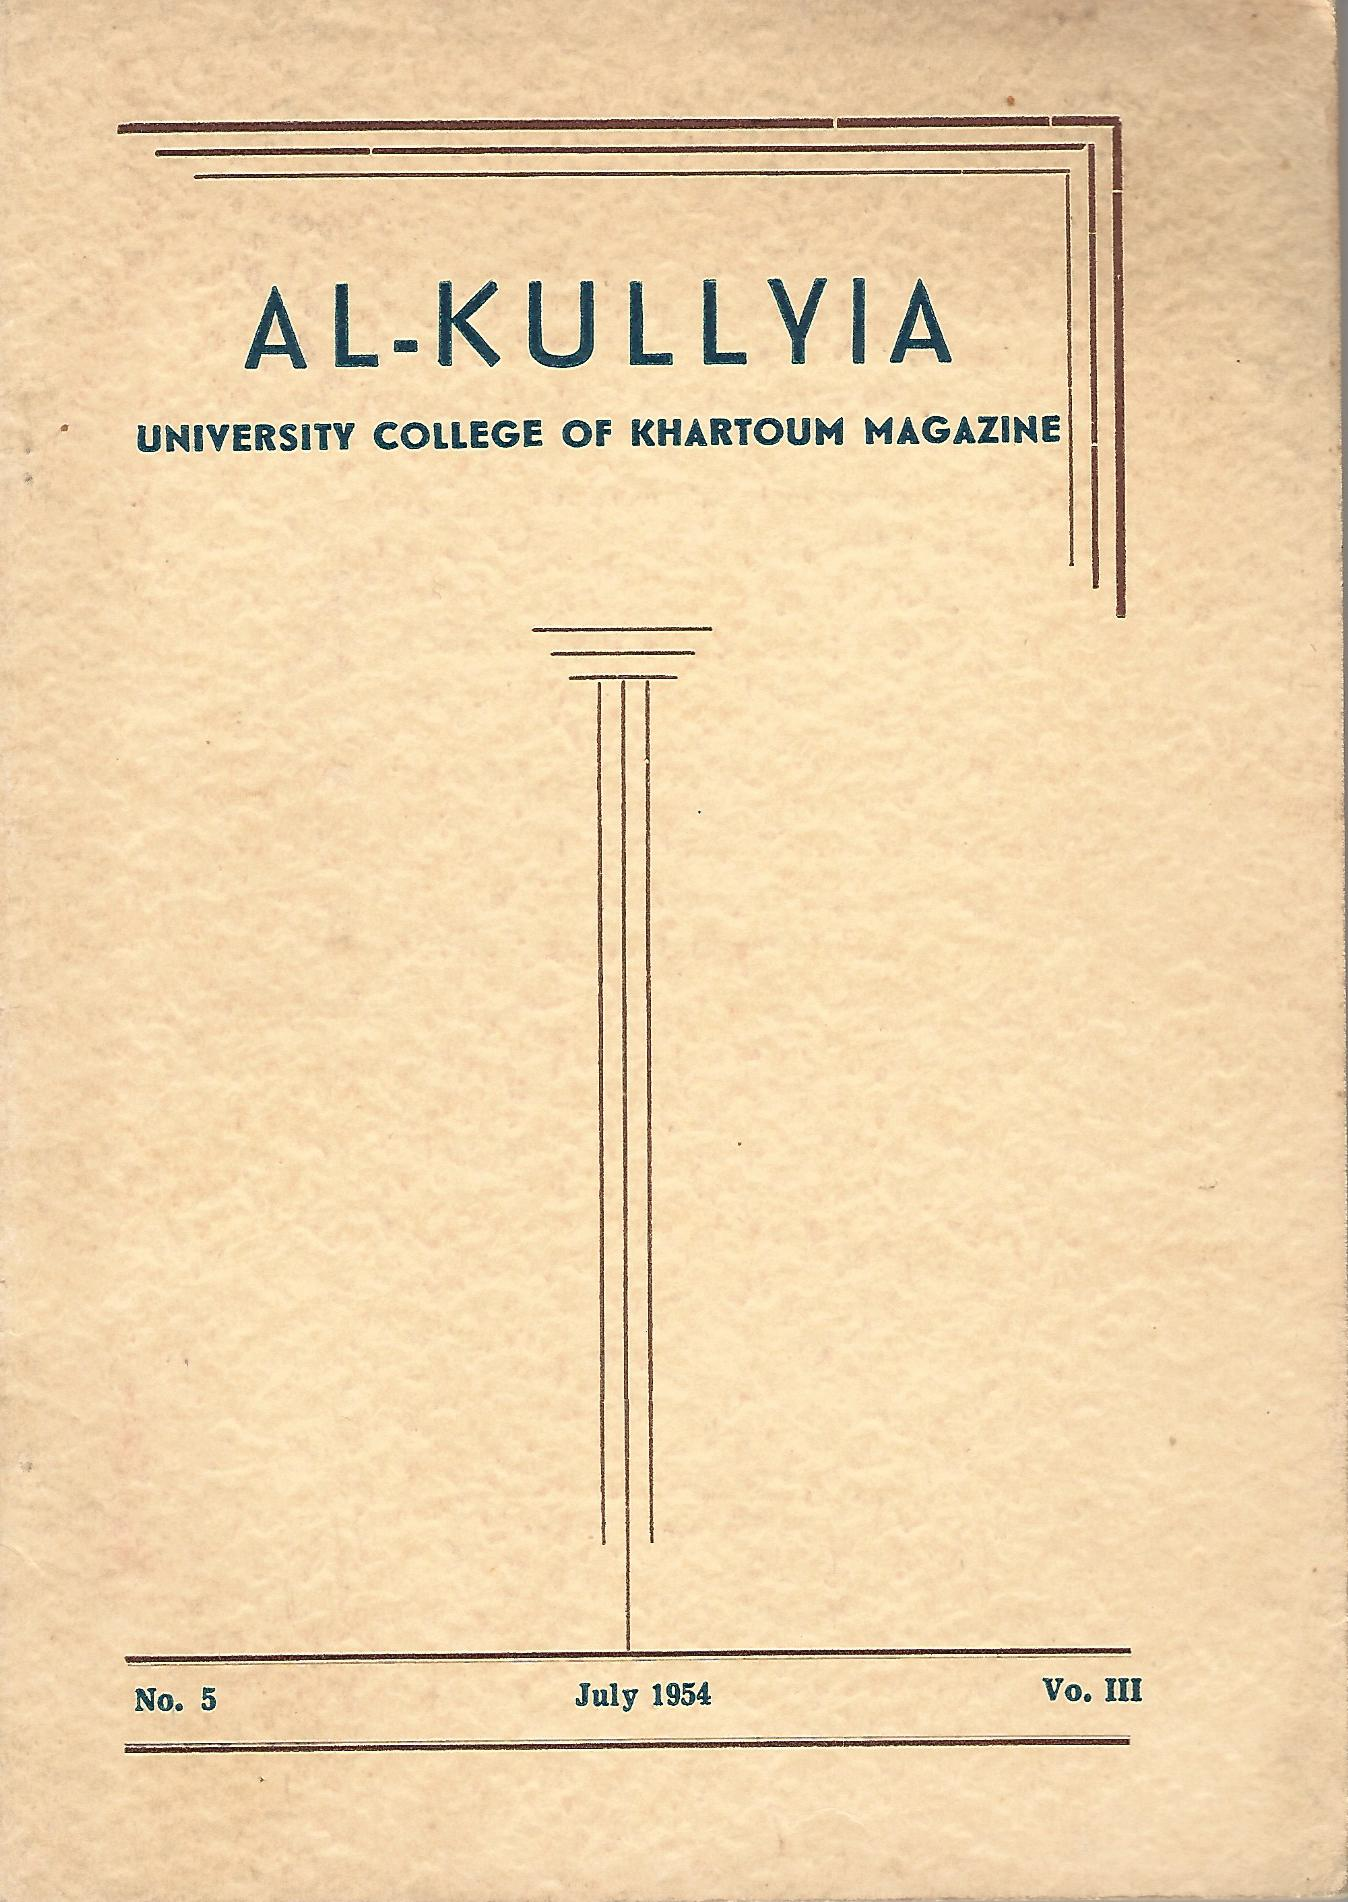 Image for Al-Kullyia: University College of Khartoum Magazine No. 5 Vol. III, July 1954